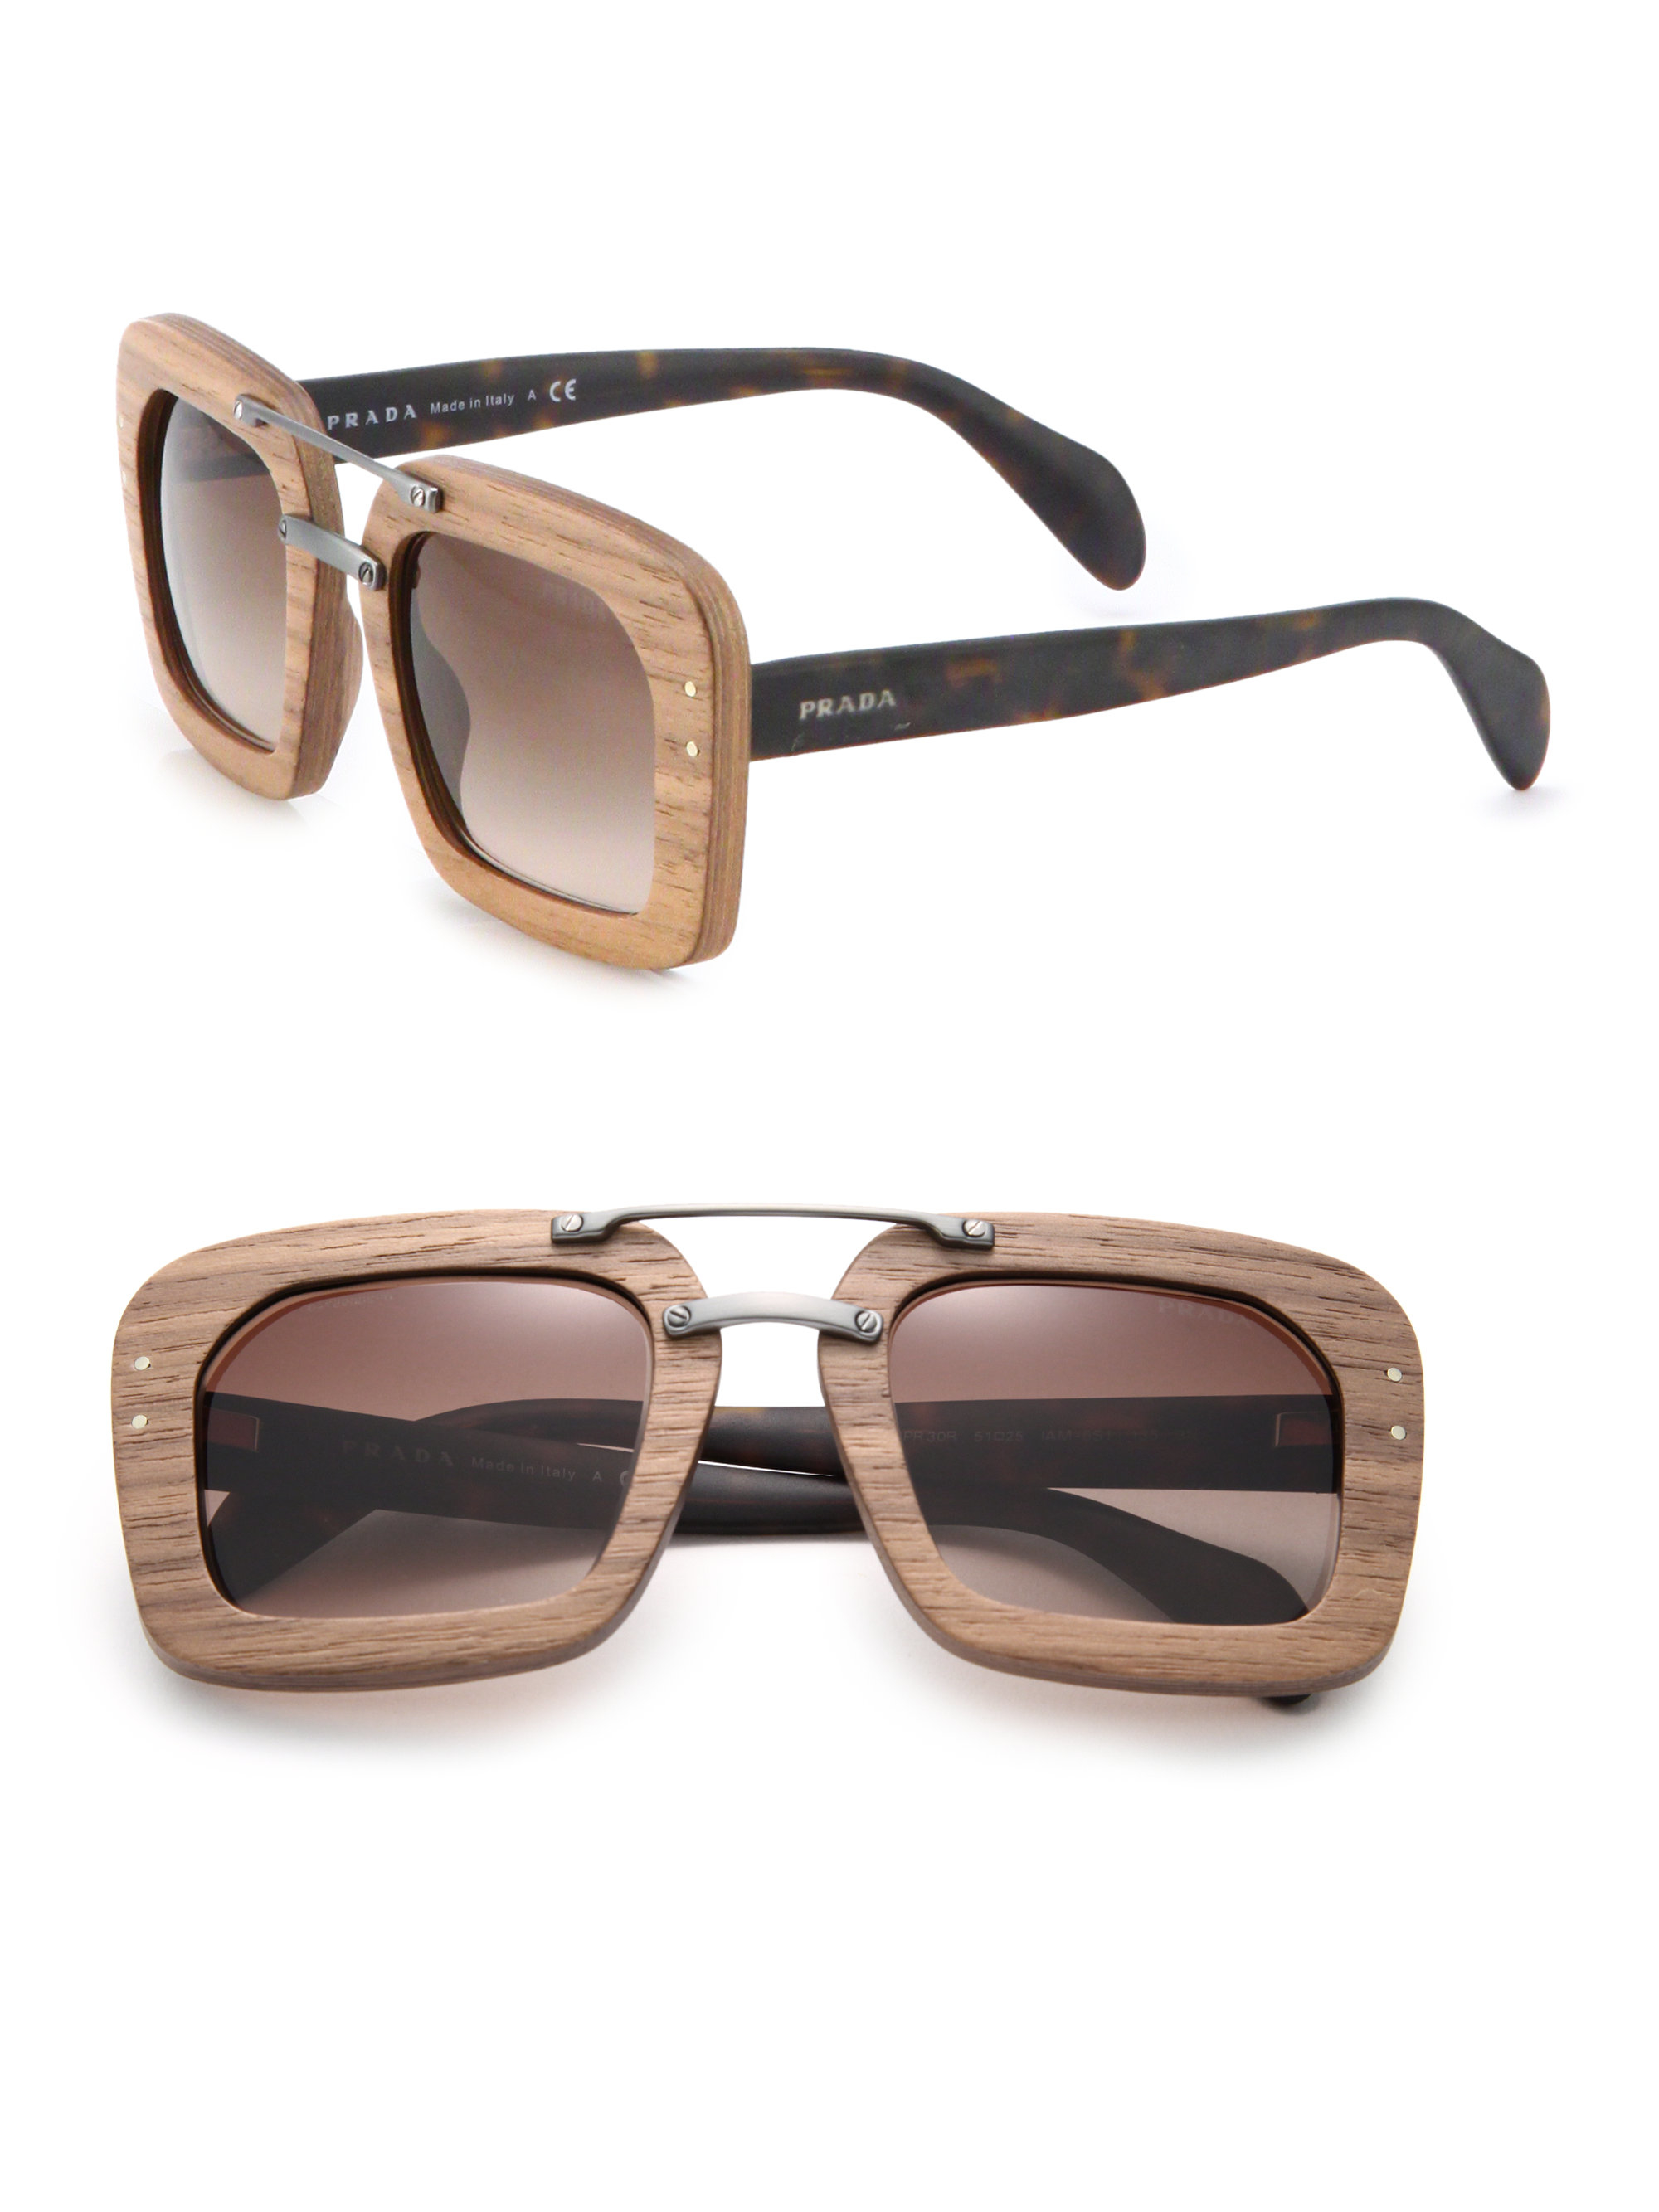 810d35709a Prada Wooden 51mm Square Sunglasses in Brown - Lyst